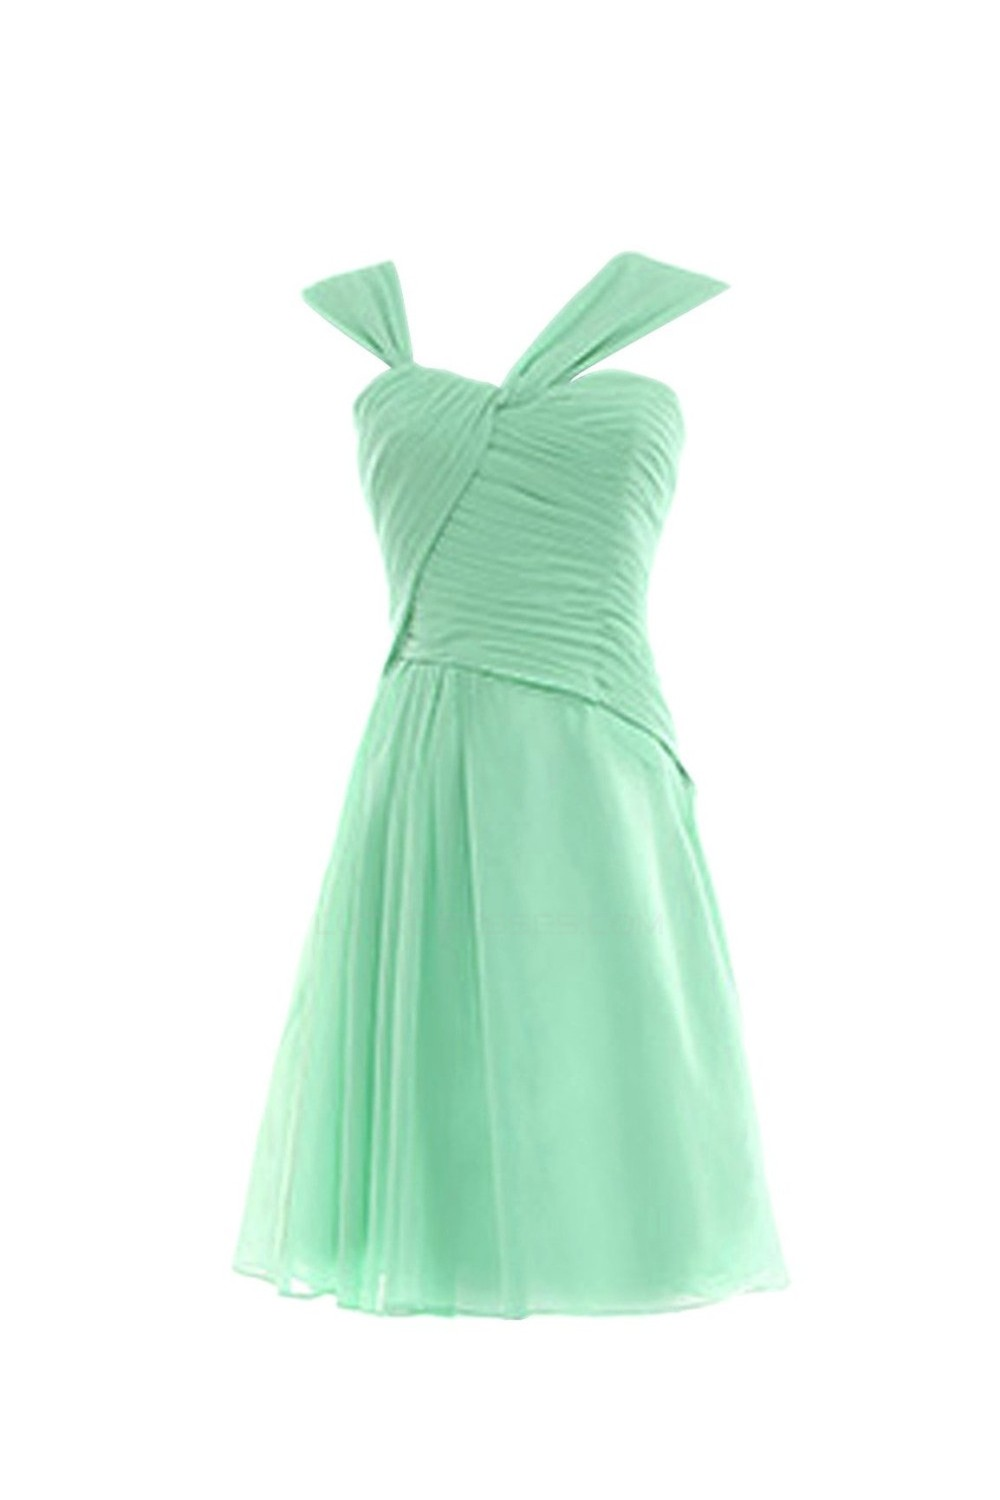 Short/Mini Mint Green Chiffon Bridesmaid Dresses/Wedding Party ...